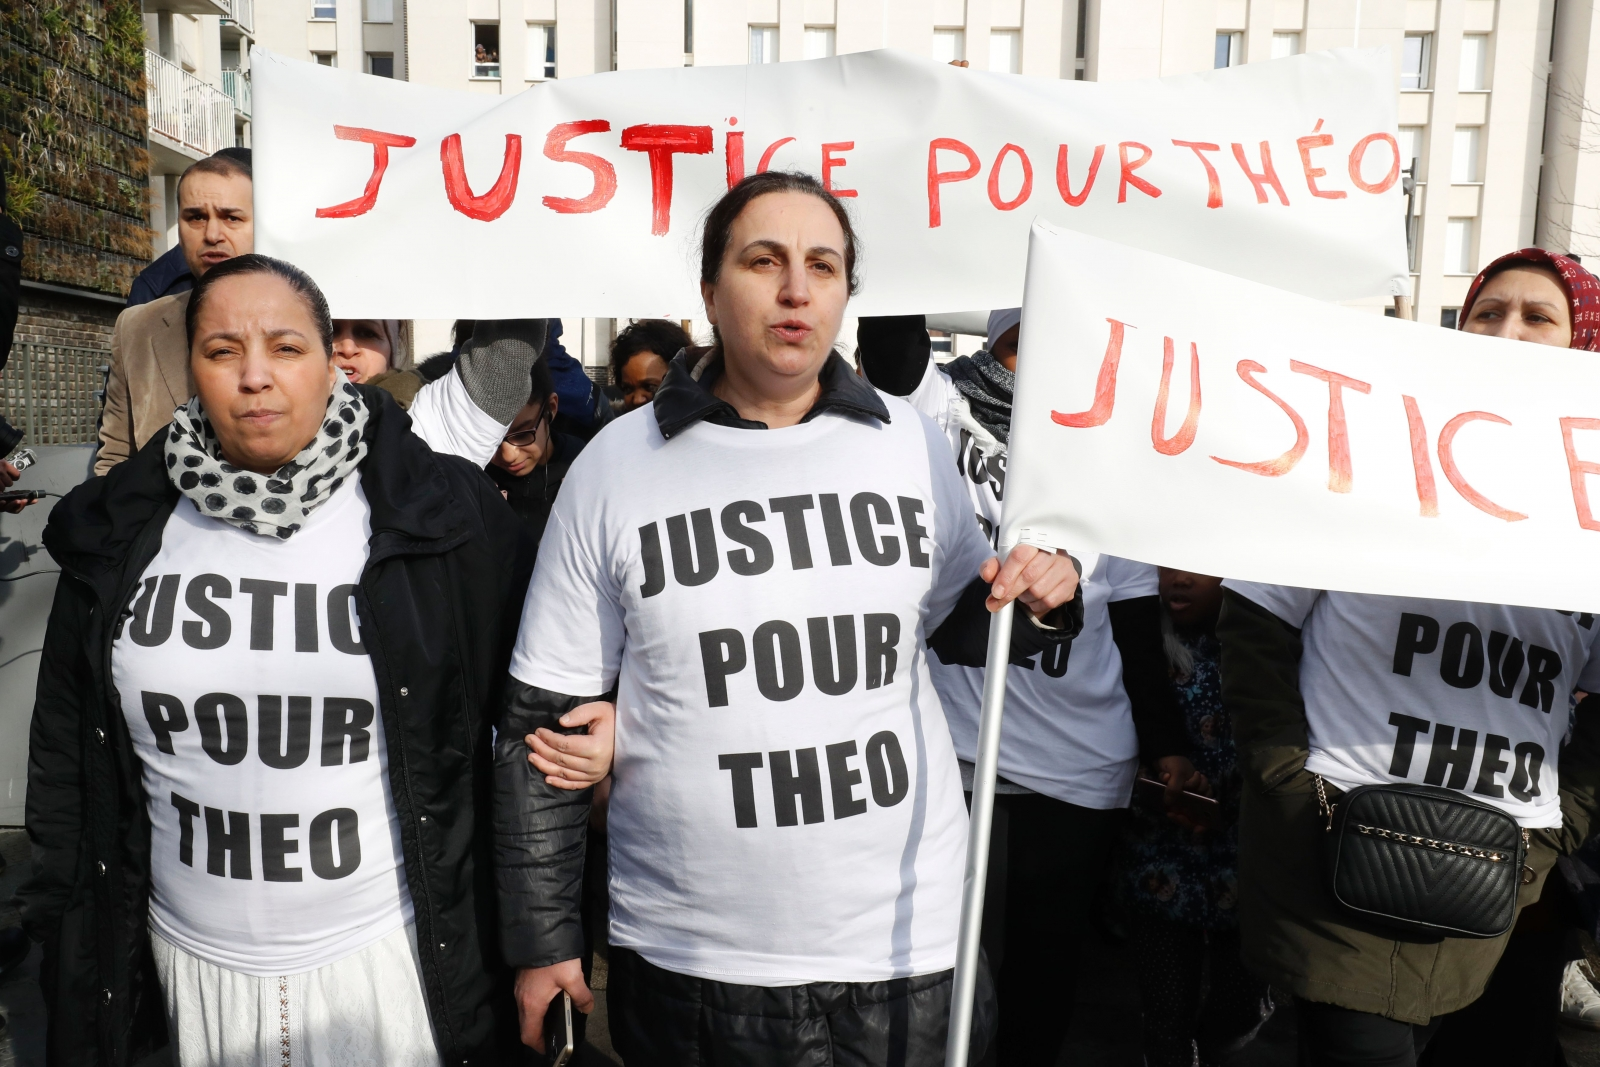 Paris protests after claims that man was raped by policeman while being arrested